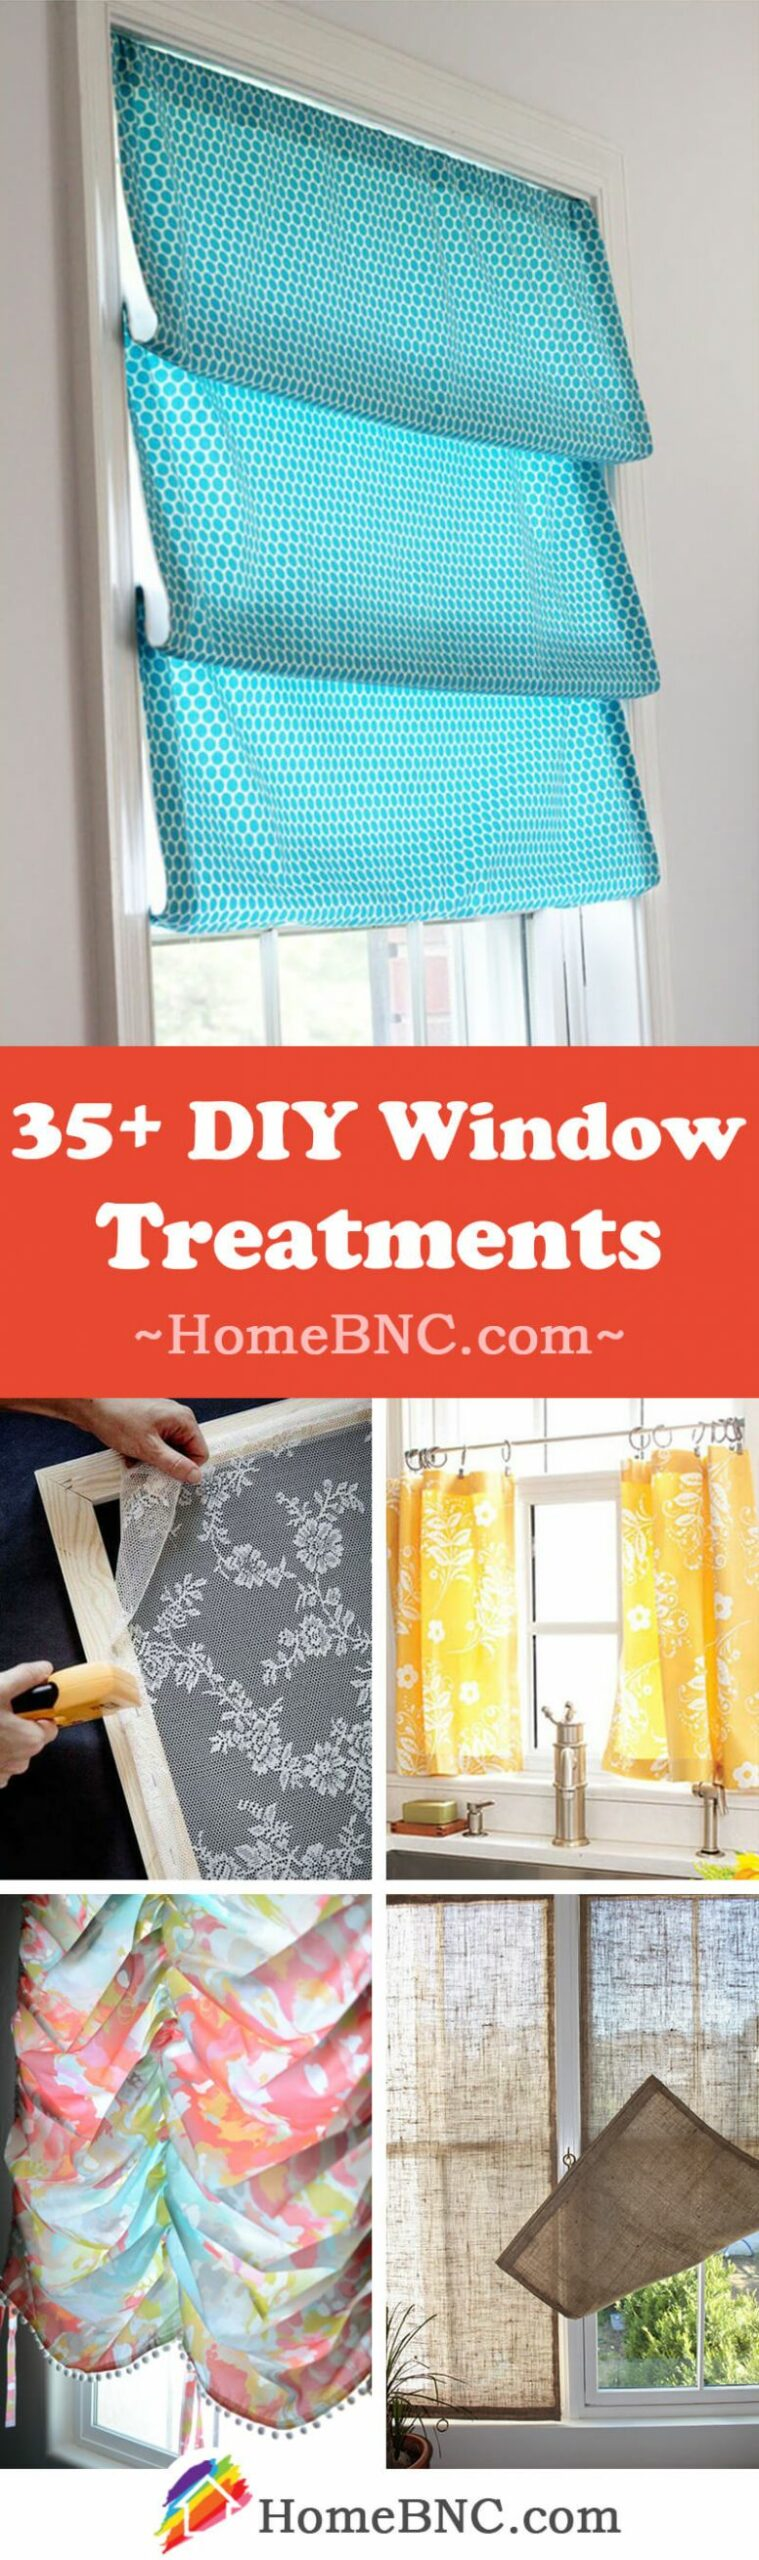 8+ Best DIY Window Treatment Ideas and Desings for 8 - window shade ideas for your home